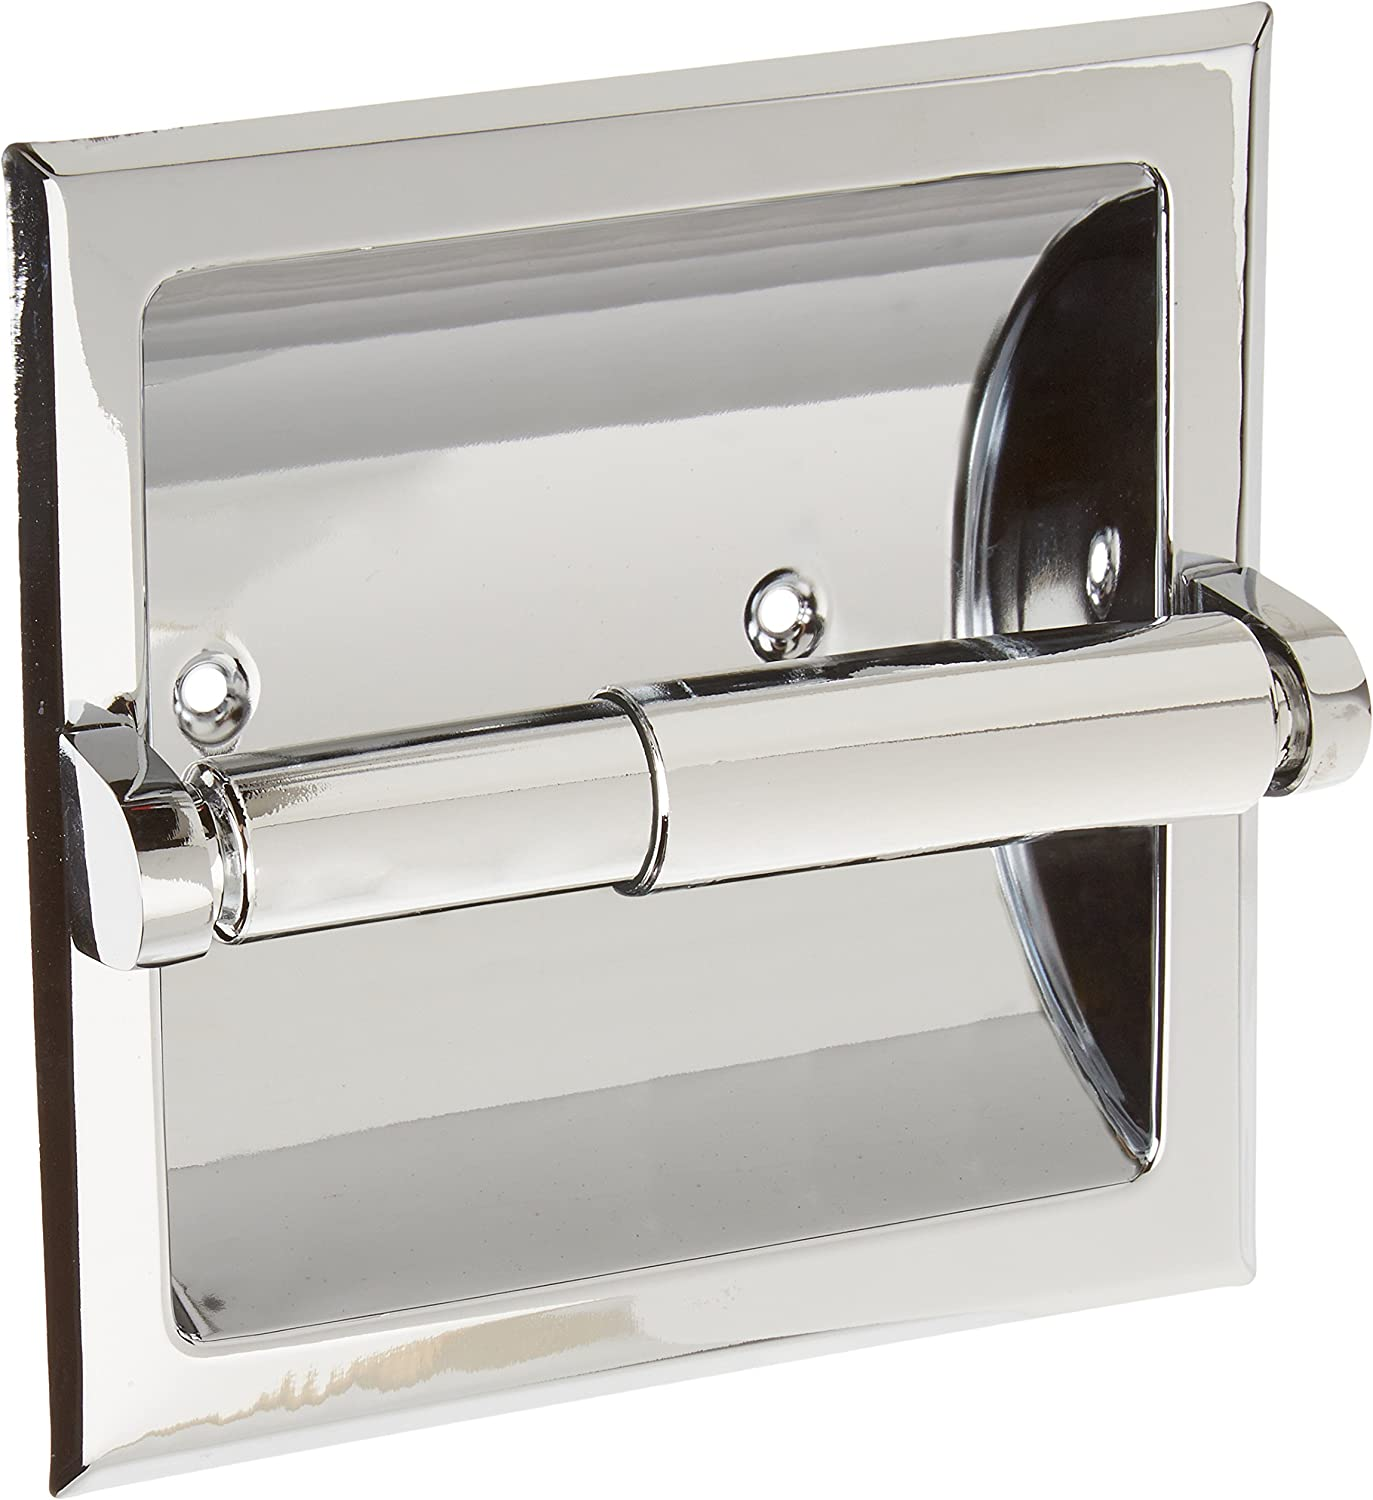 Moen 575 Charlotte Mall Donner Collection Chrome Recessed Sale SALE% OFF Paper Holder